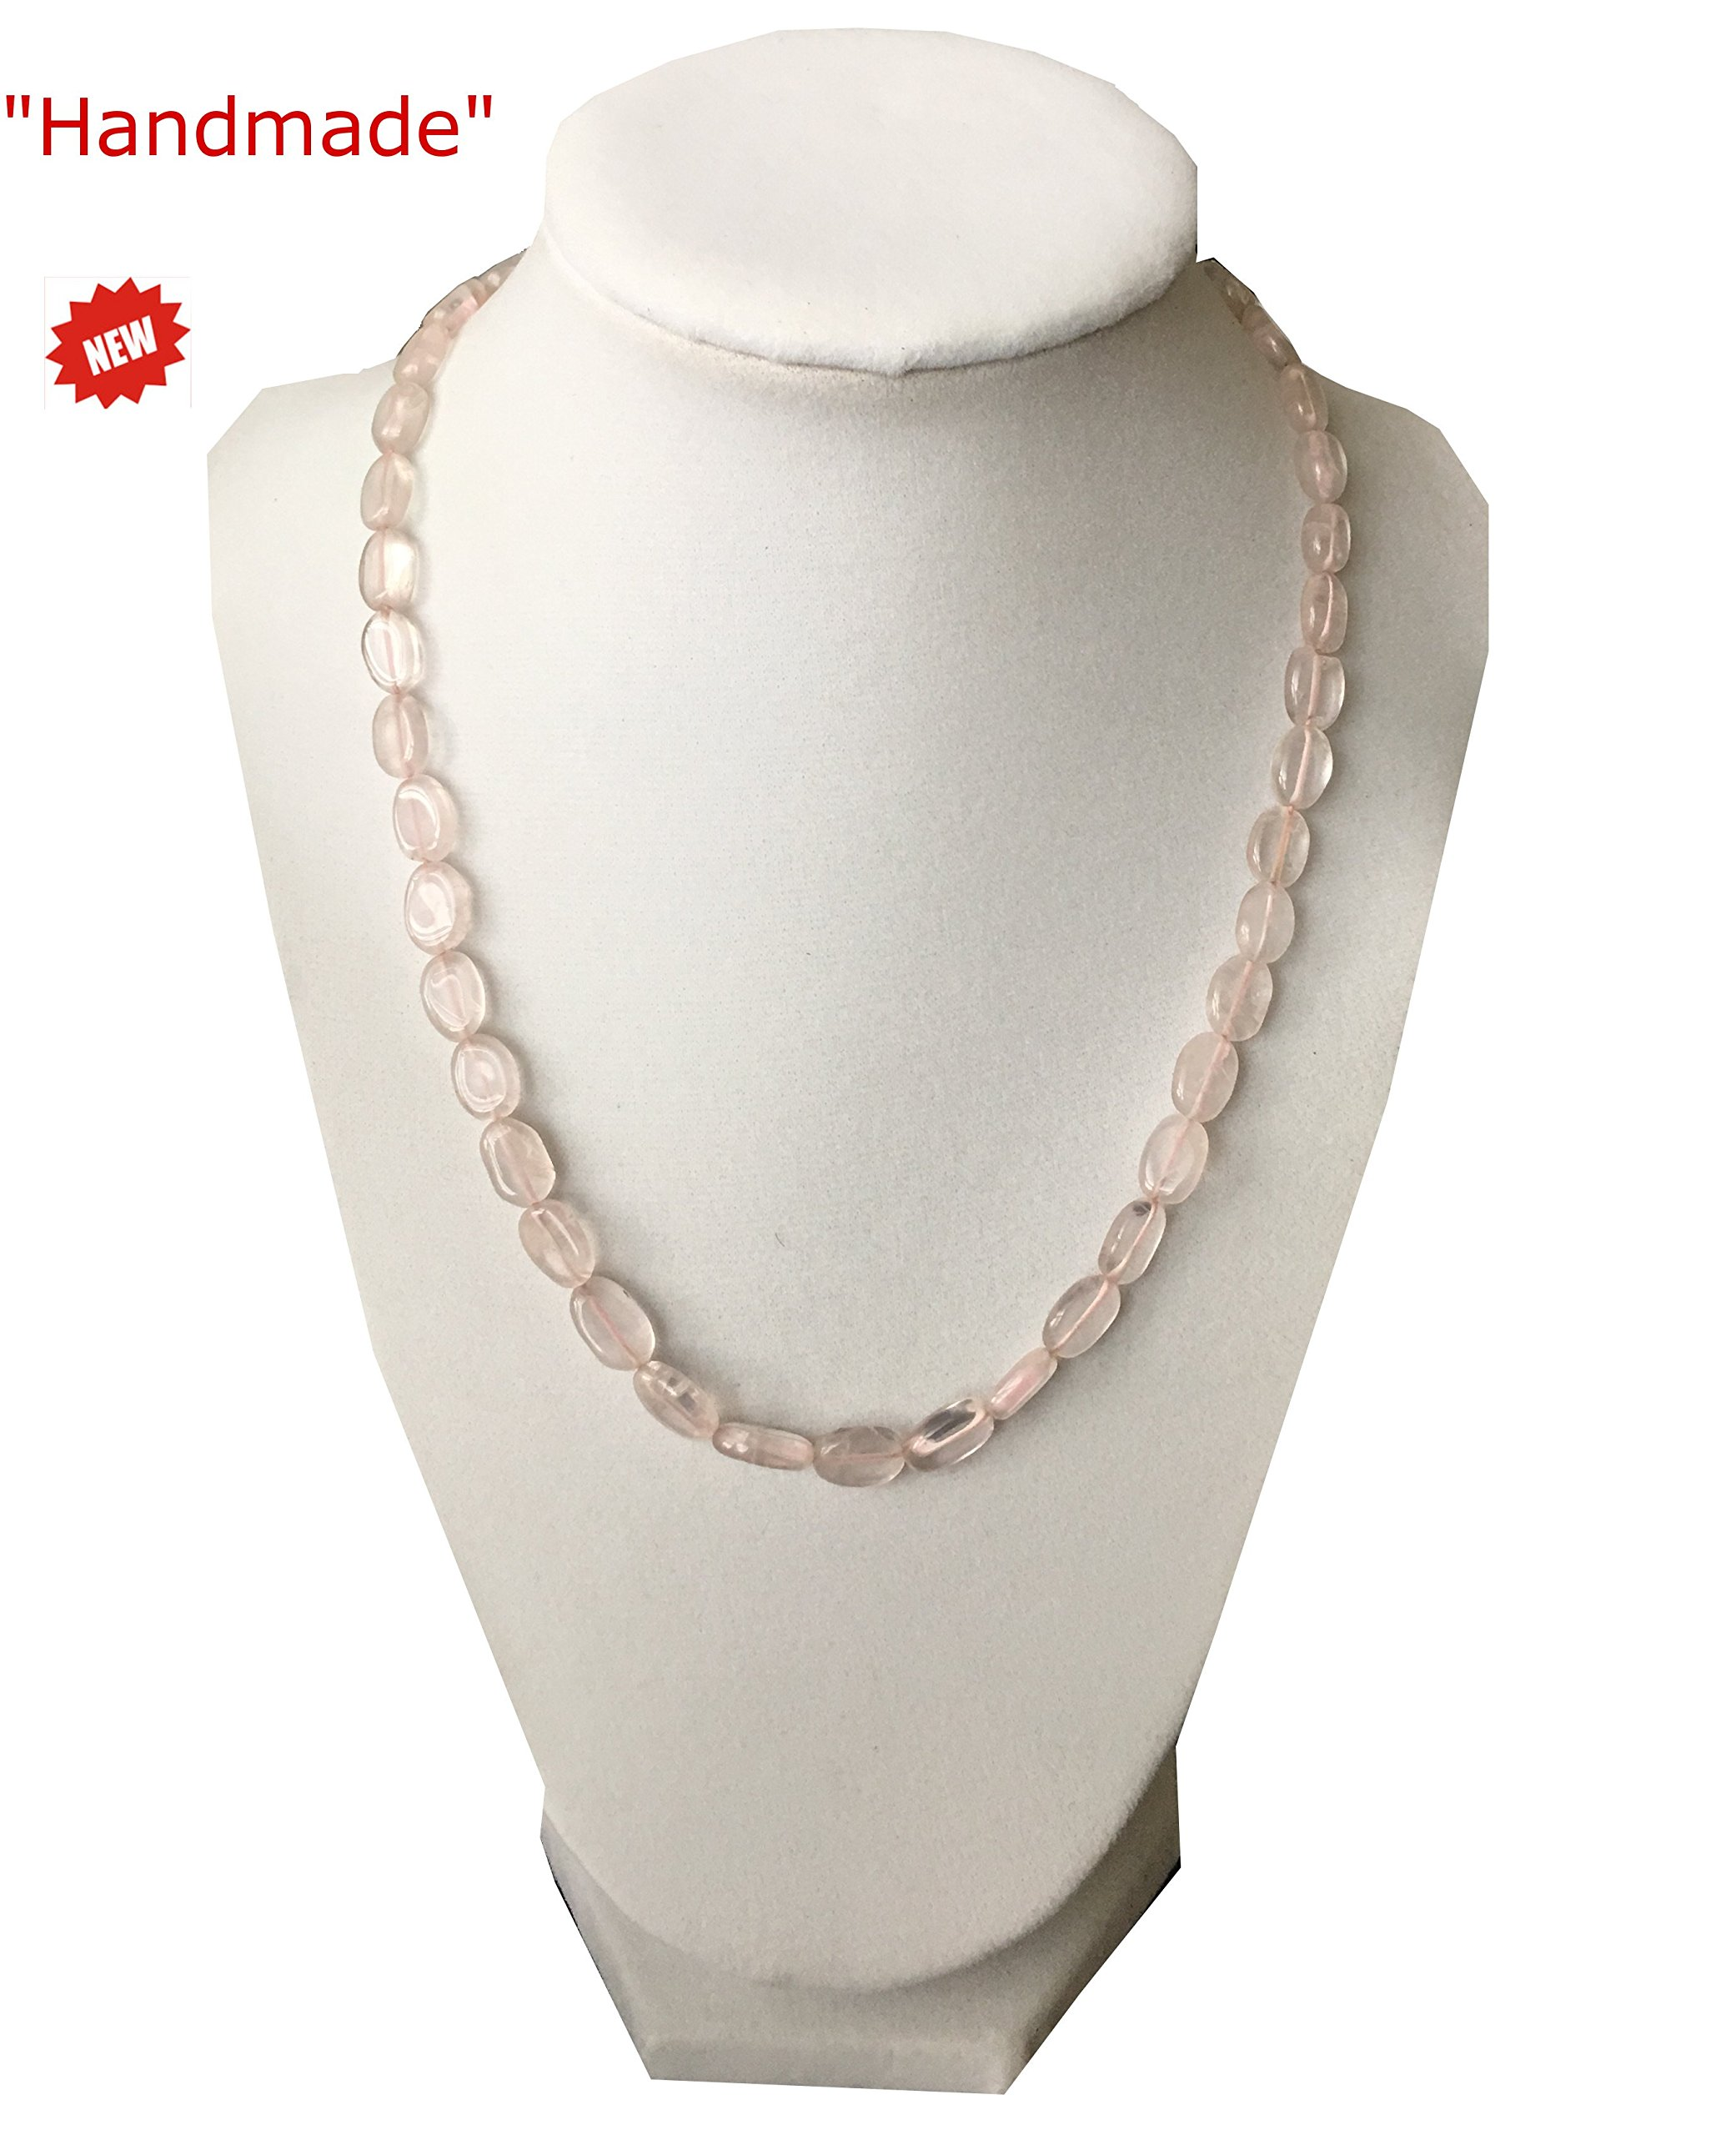 Himalayan Handmade Necklace Semi Quality White Color Transparent Gemstone Beads Comes With Gift Box